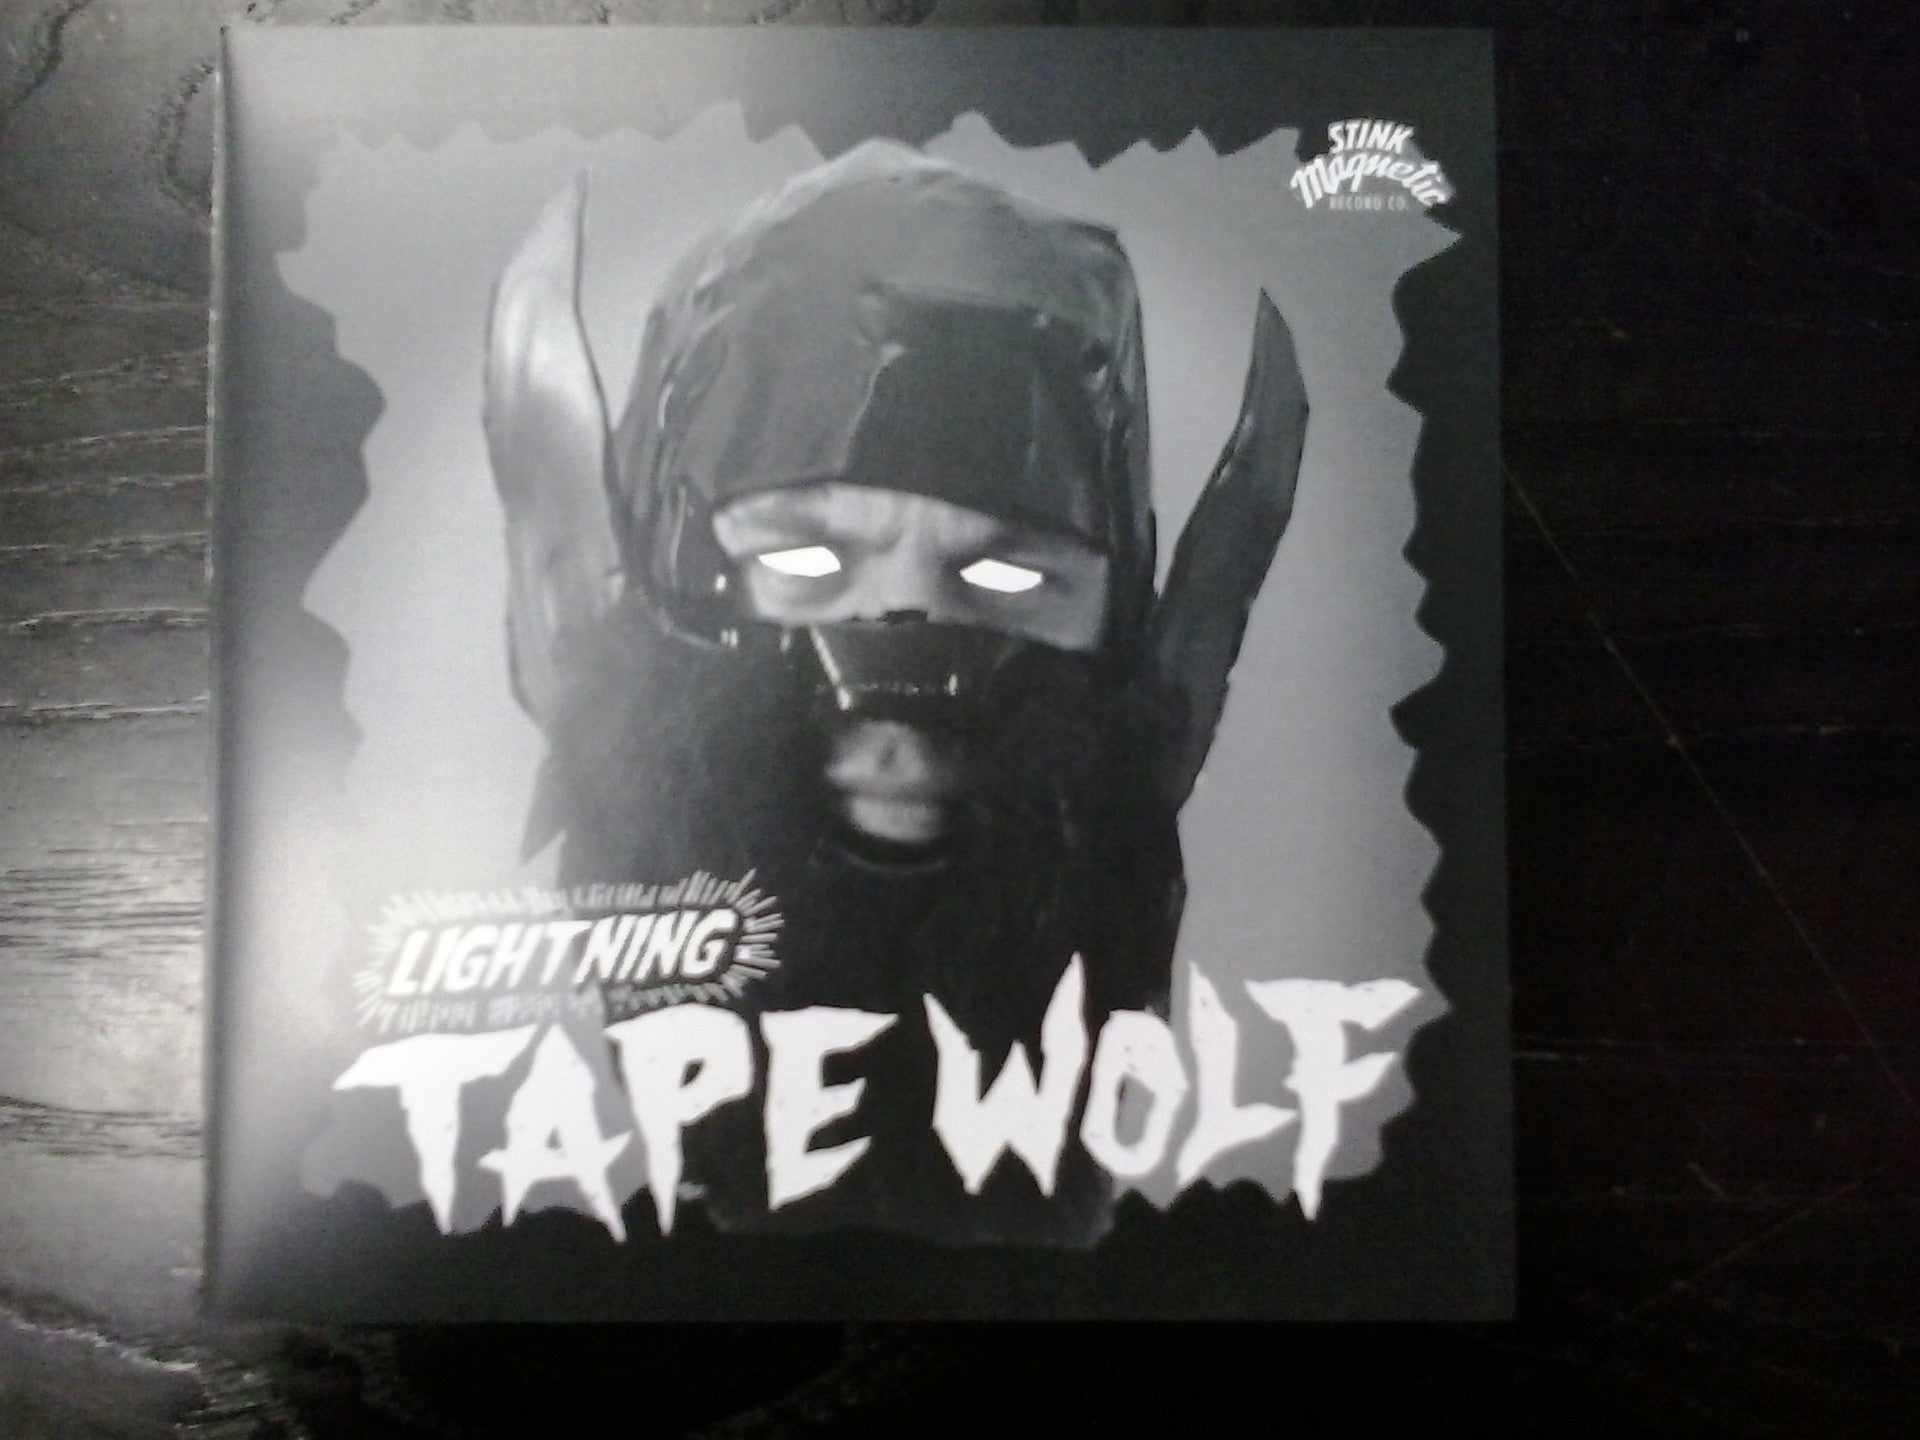 "LIGHTNING TAPE WOLF-THE BALLARD OF DR ELMSTEIN 7"" *NEW*"